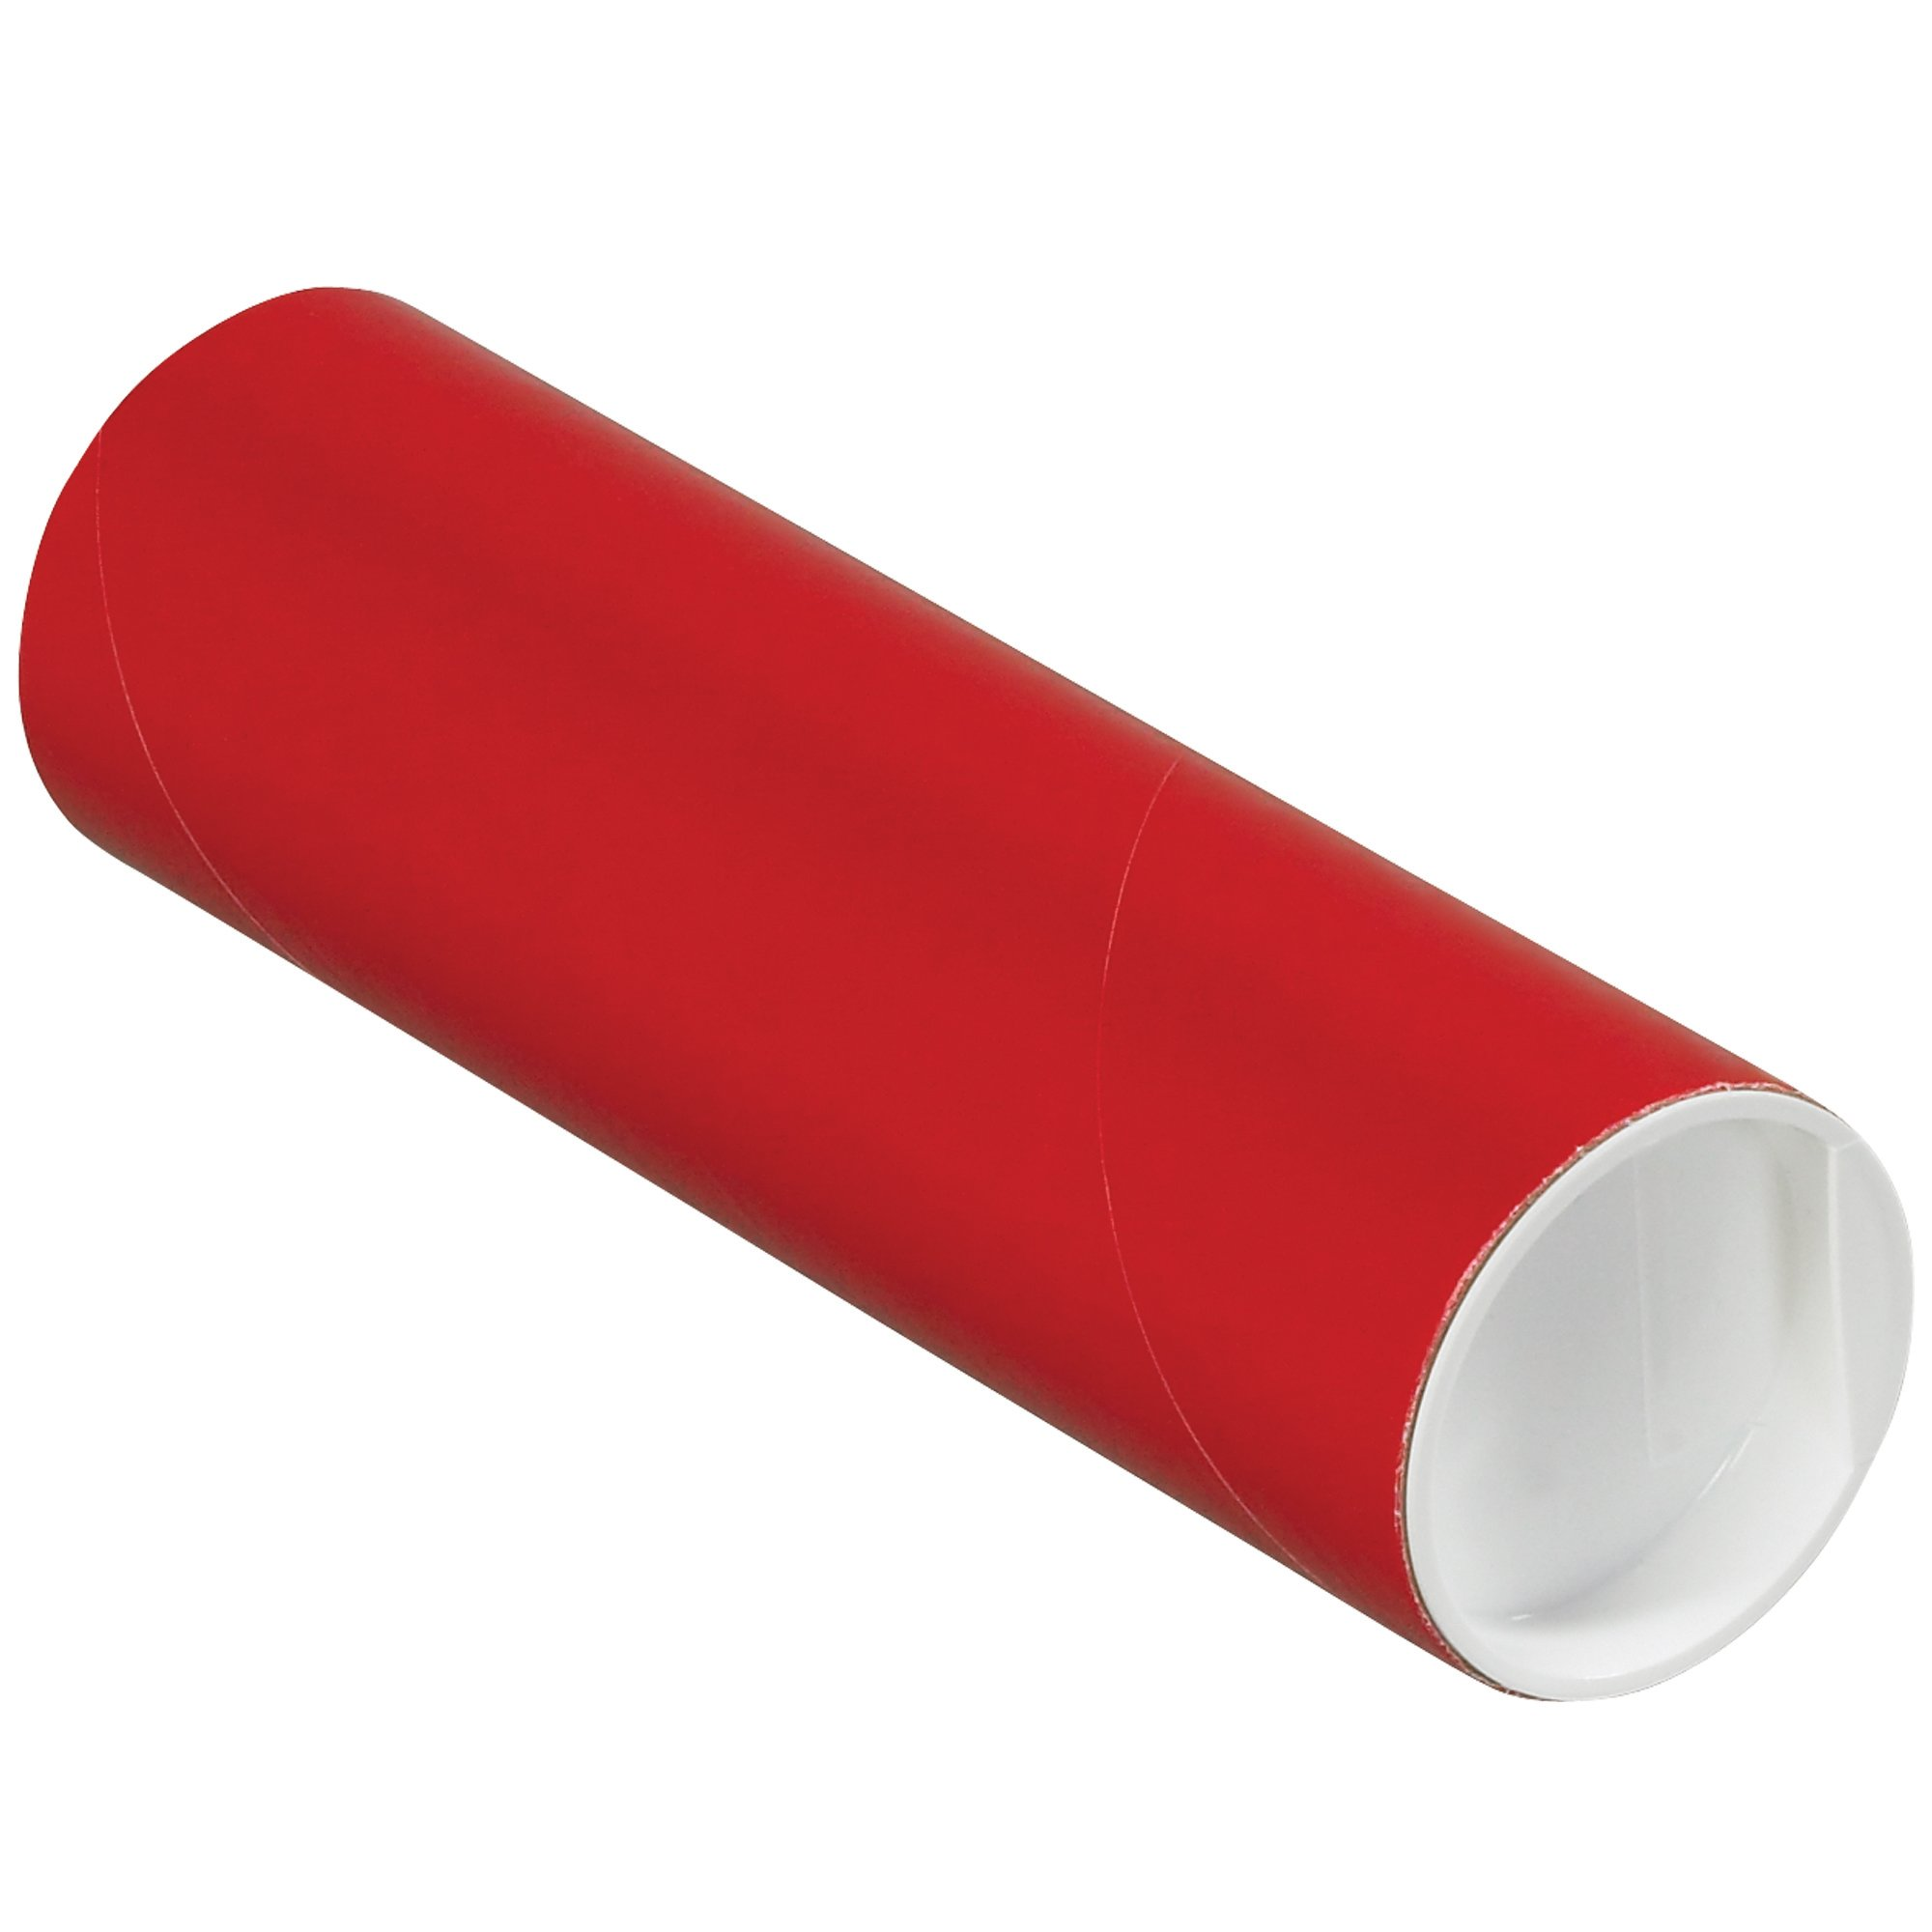 Mailing Tubes with Caps, 2'' x 6'', Red, 50/Case by Great Box Supply